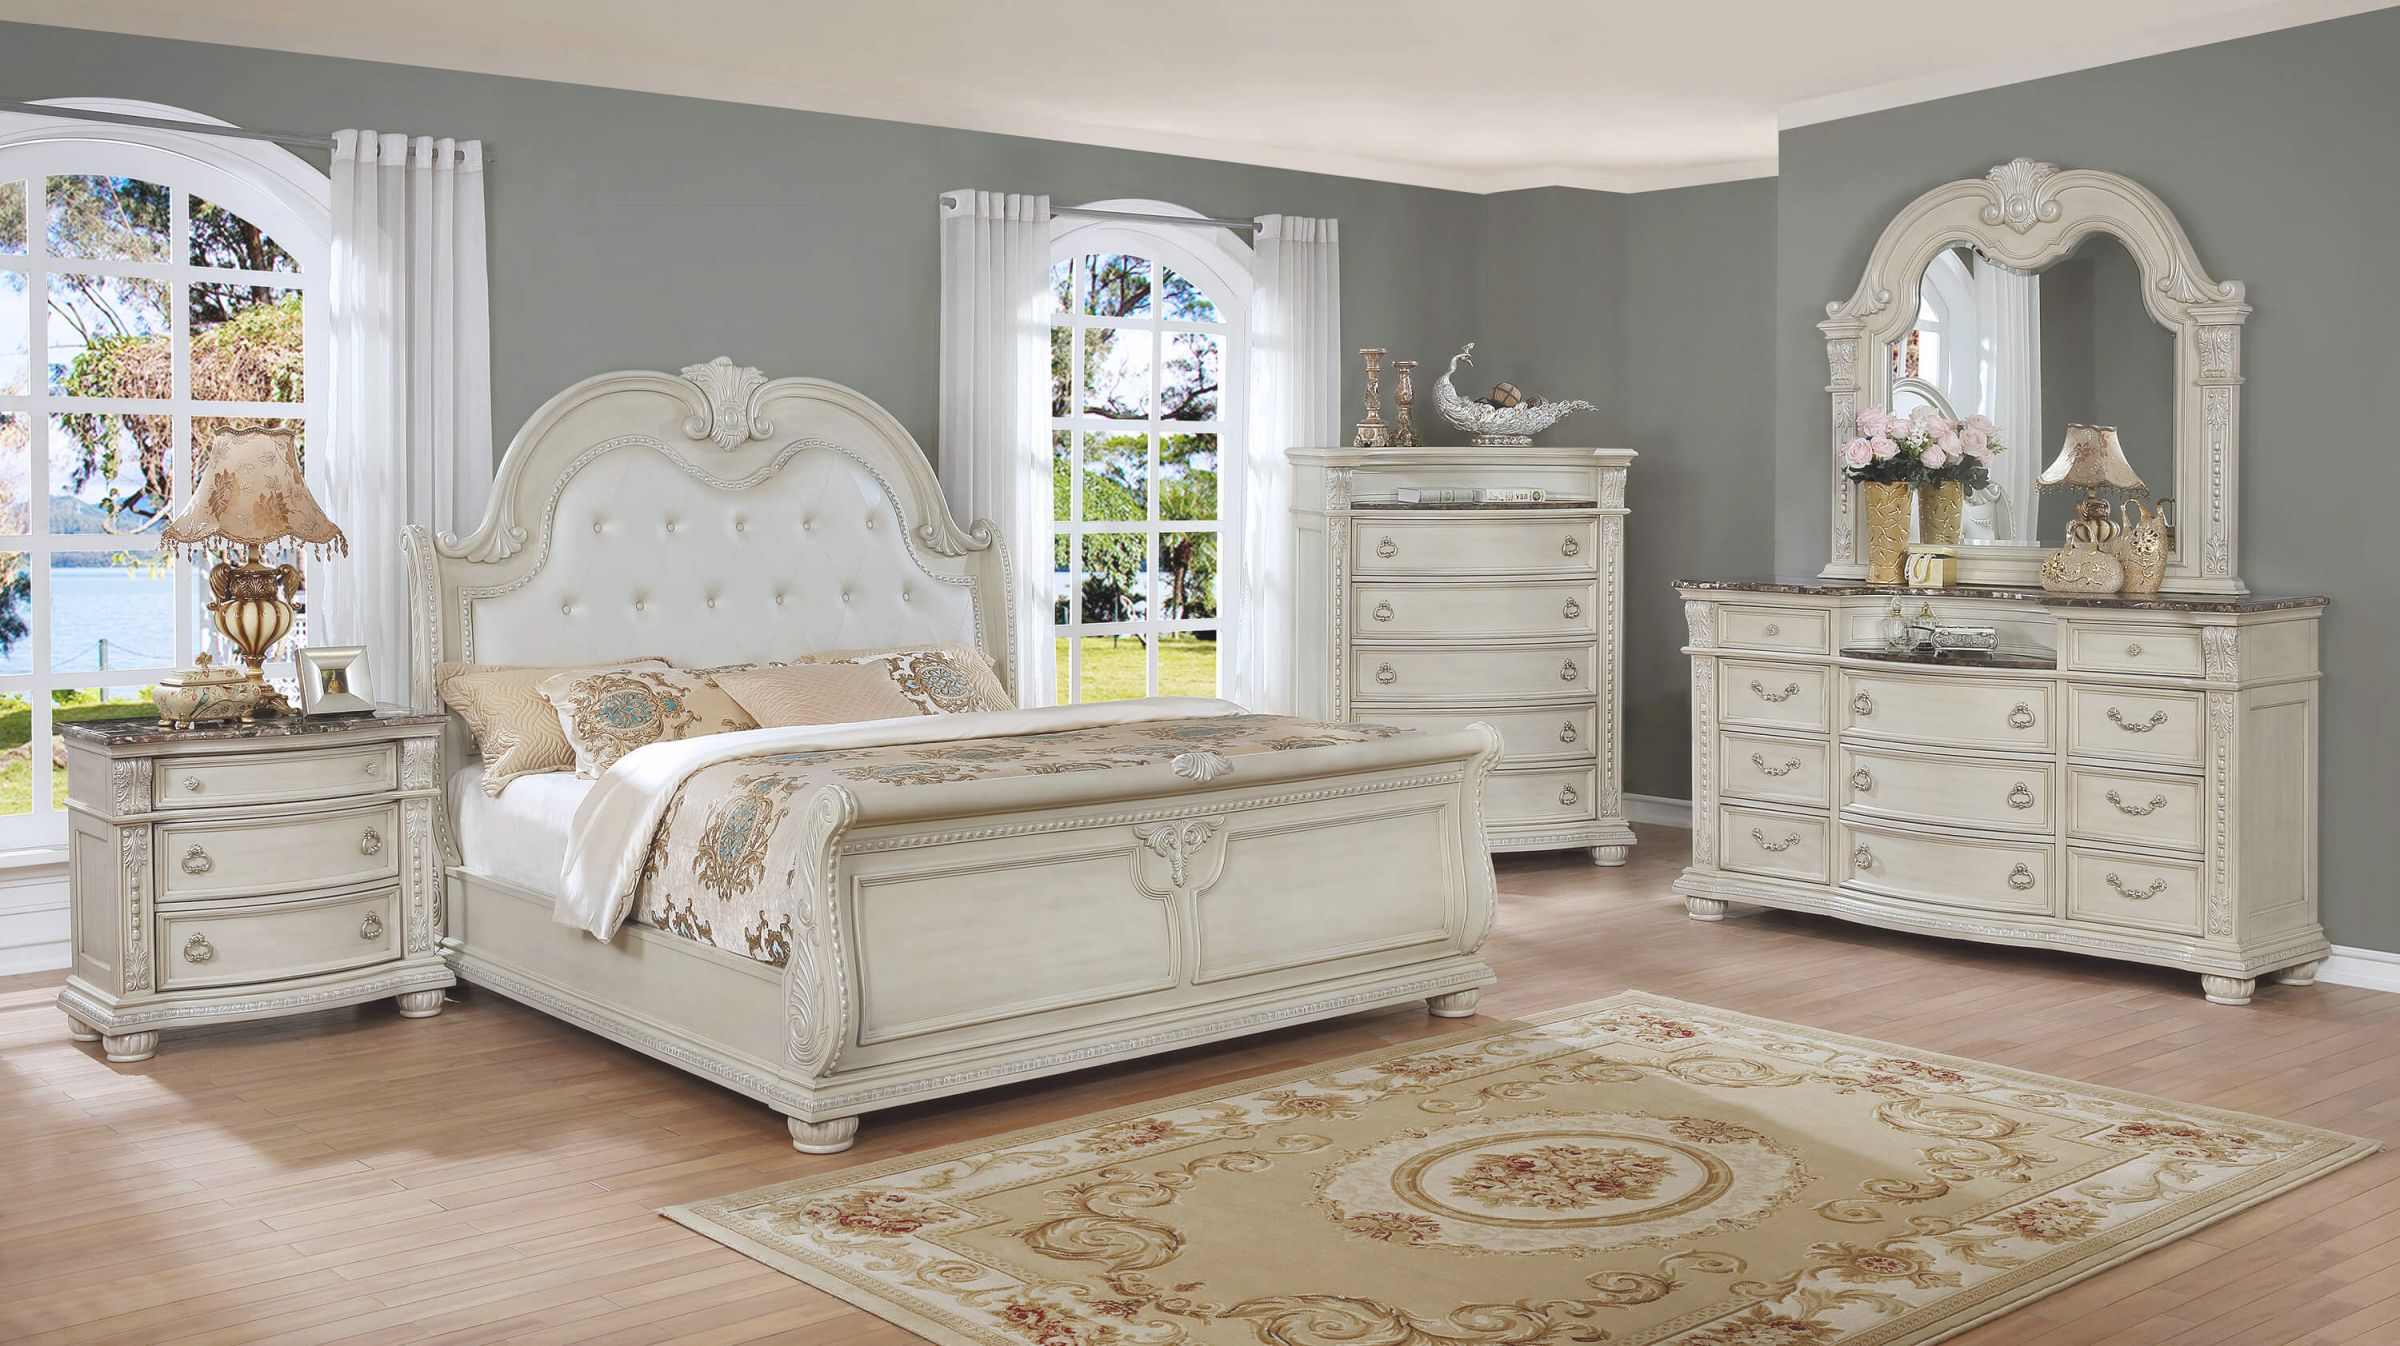 B1630 Stanley Antique White Marble Bedroom Setcrown Mark with White Bedroom Furniture Set